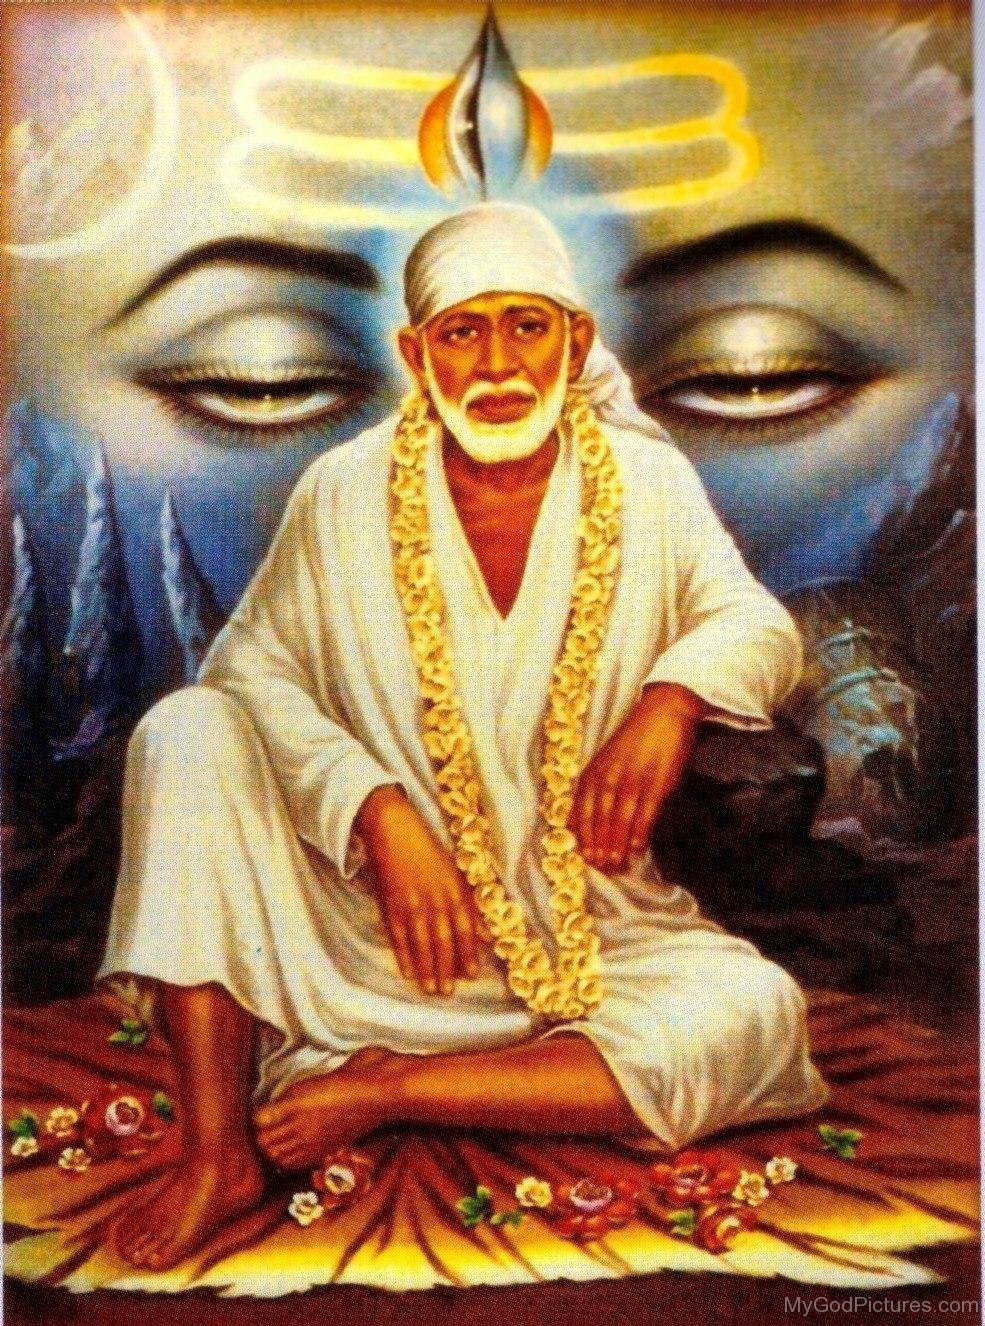 Download Wallpaper Lord Sai Baba - God-Shri-Sai-Baba  Pictures_105156.jpg